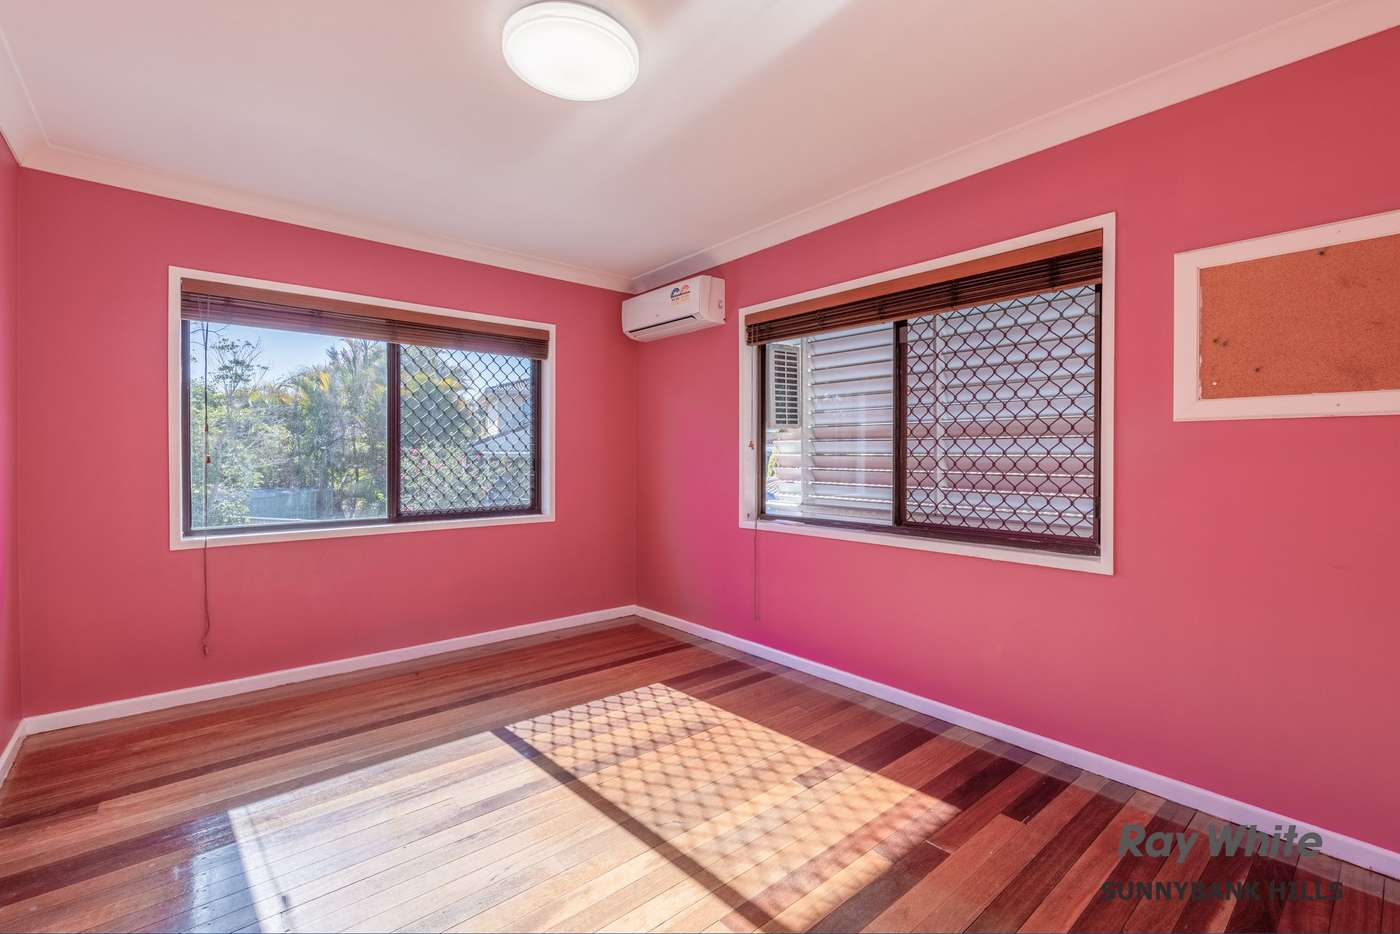 Sixth view of Homely house listing, 207 Gowan Road, Sunnybank Hills QLD 4109